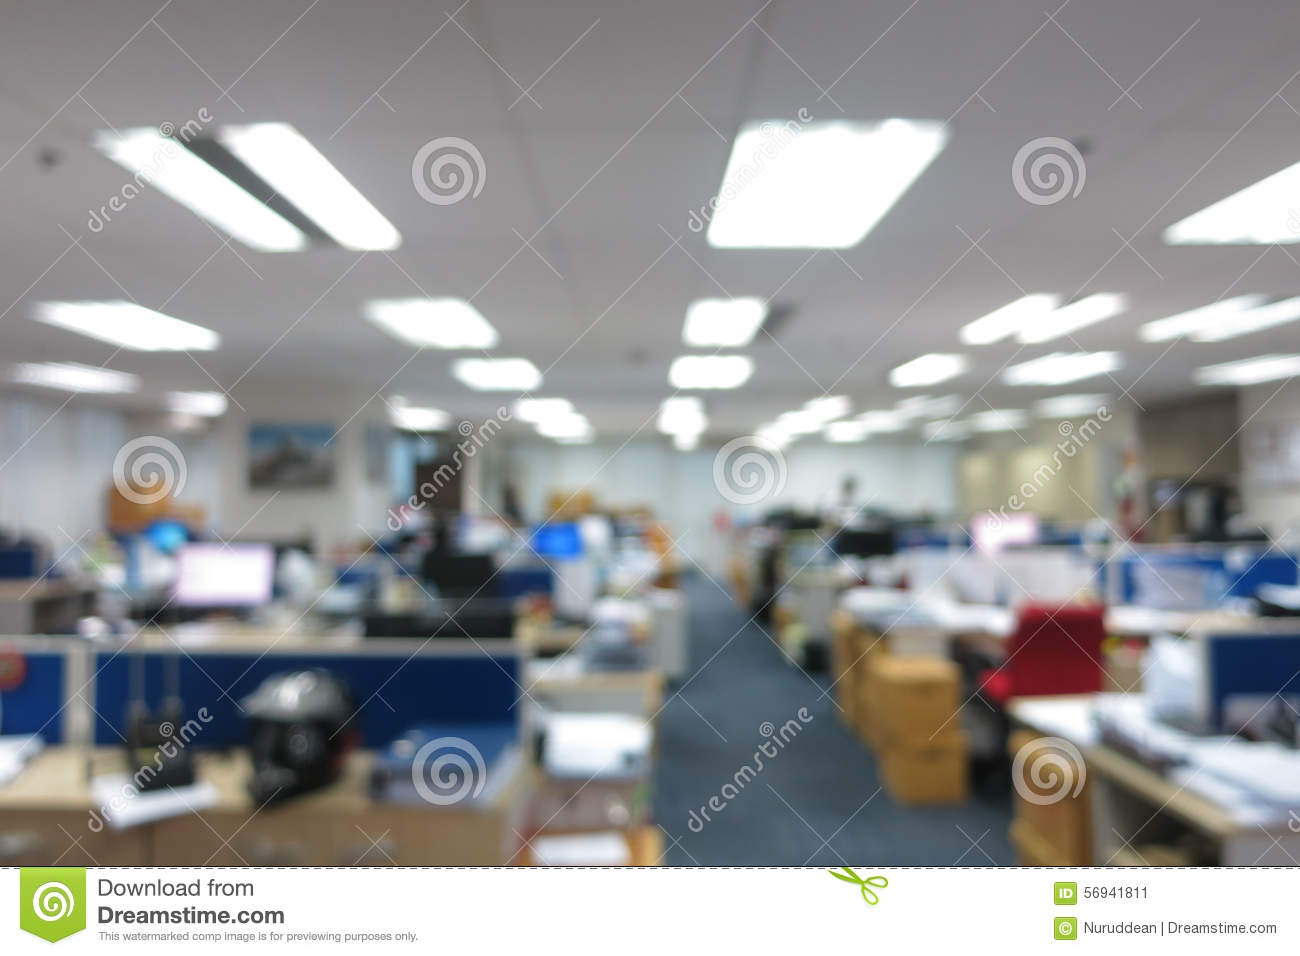 Royalty Free Stock Photo Download Abstract Blur Office Background